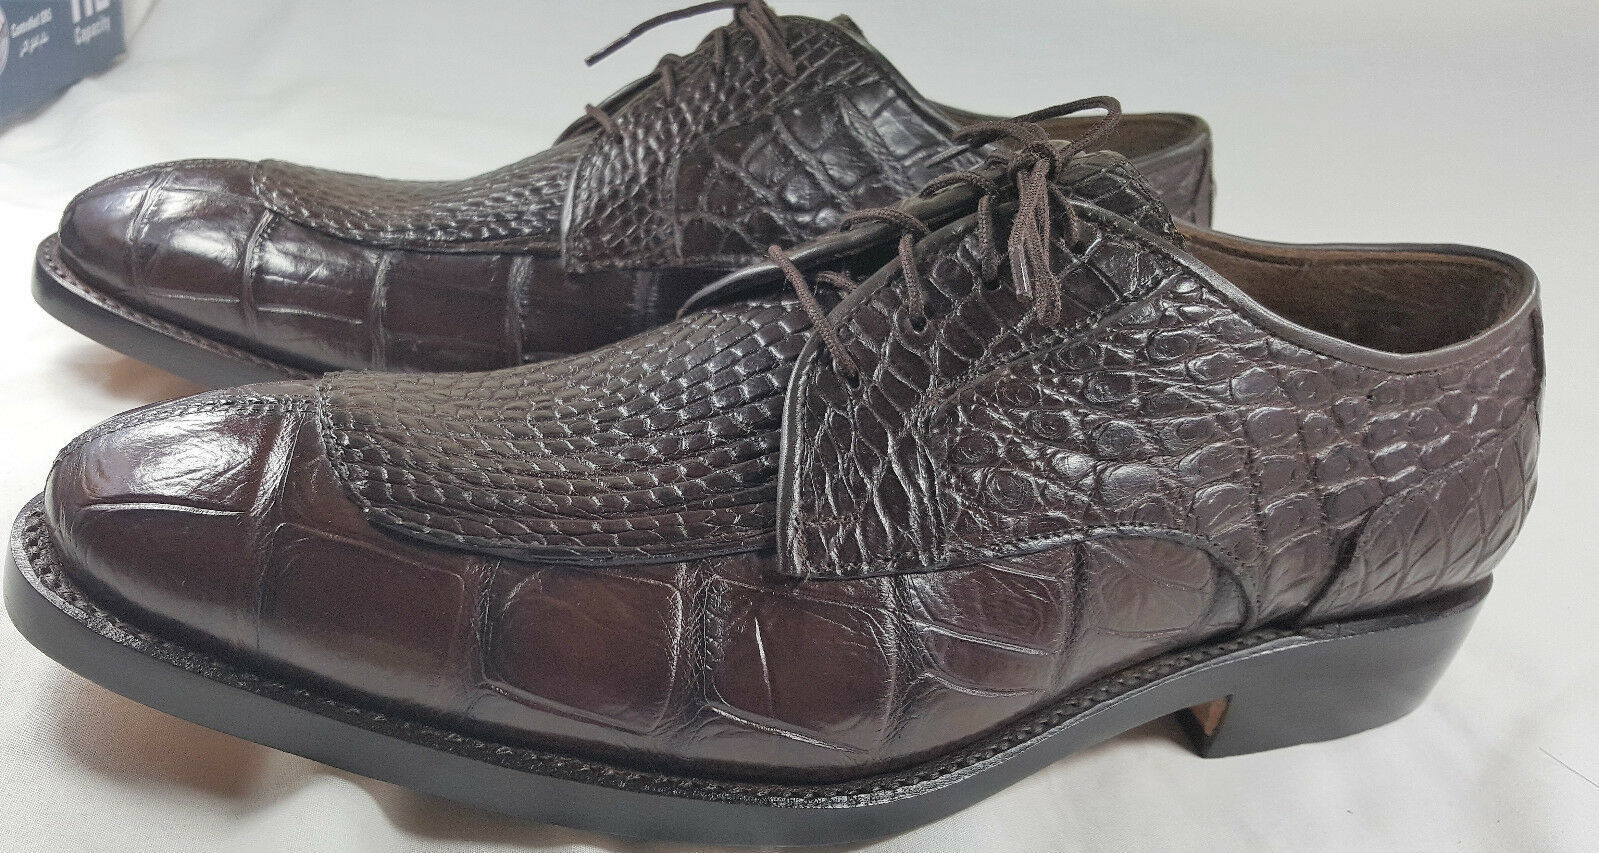 Primary image for Brown Belly Crocodile Real Leather Oxford Classic Pattern Design Shoes US 8.5-9